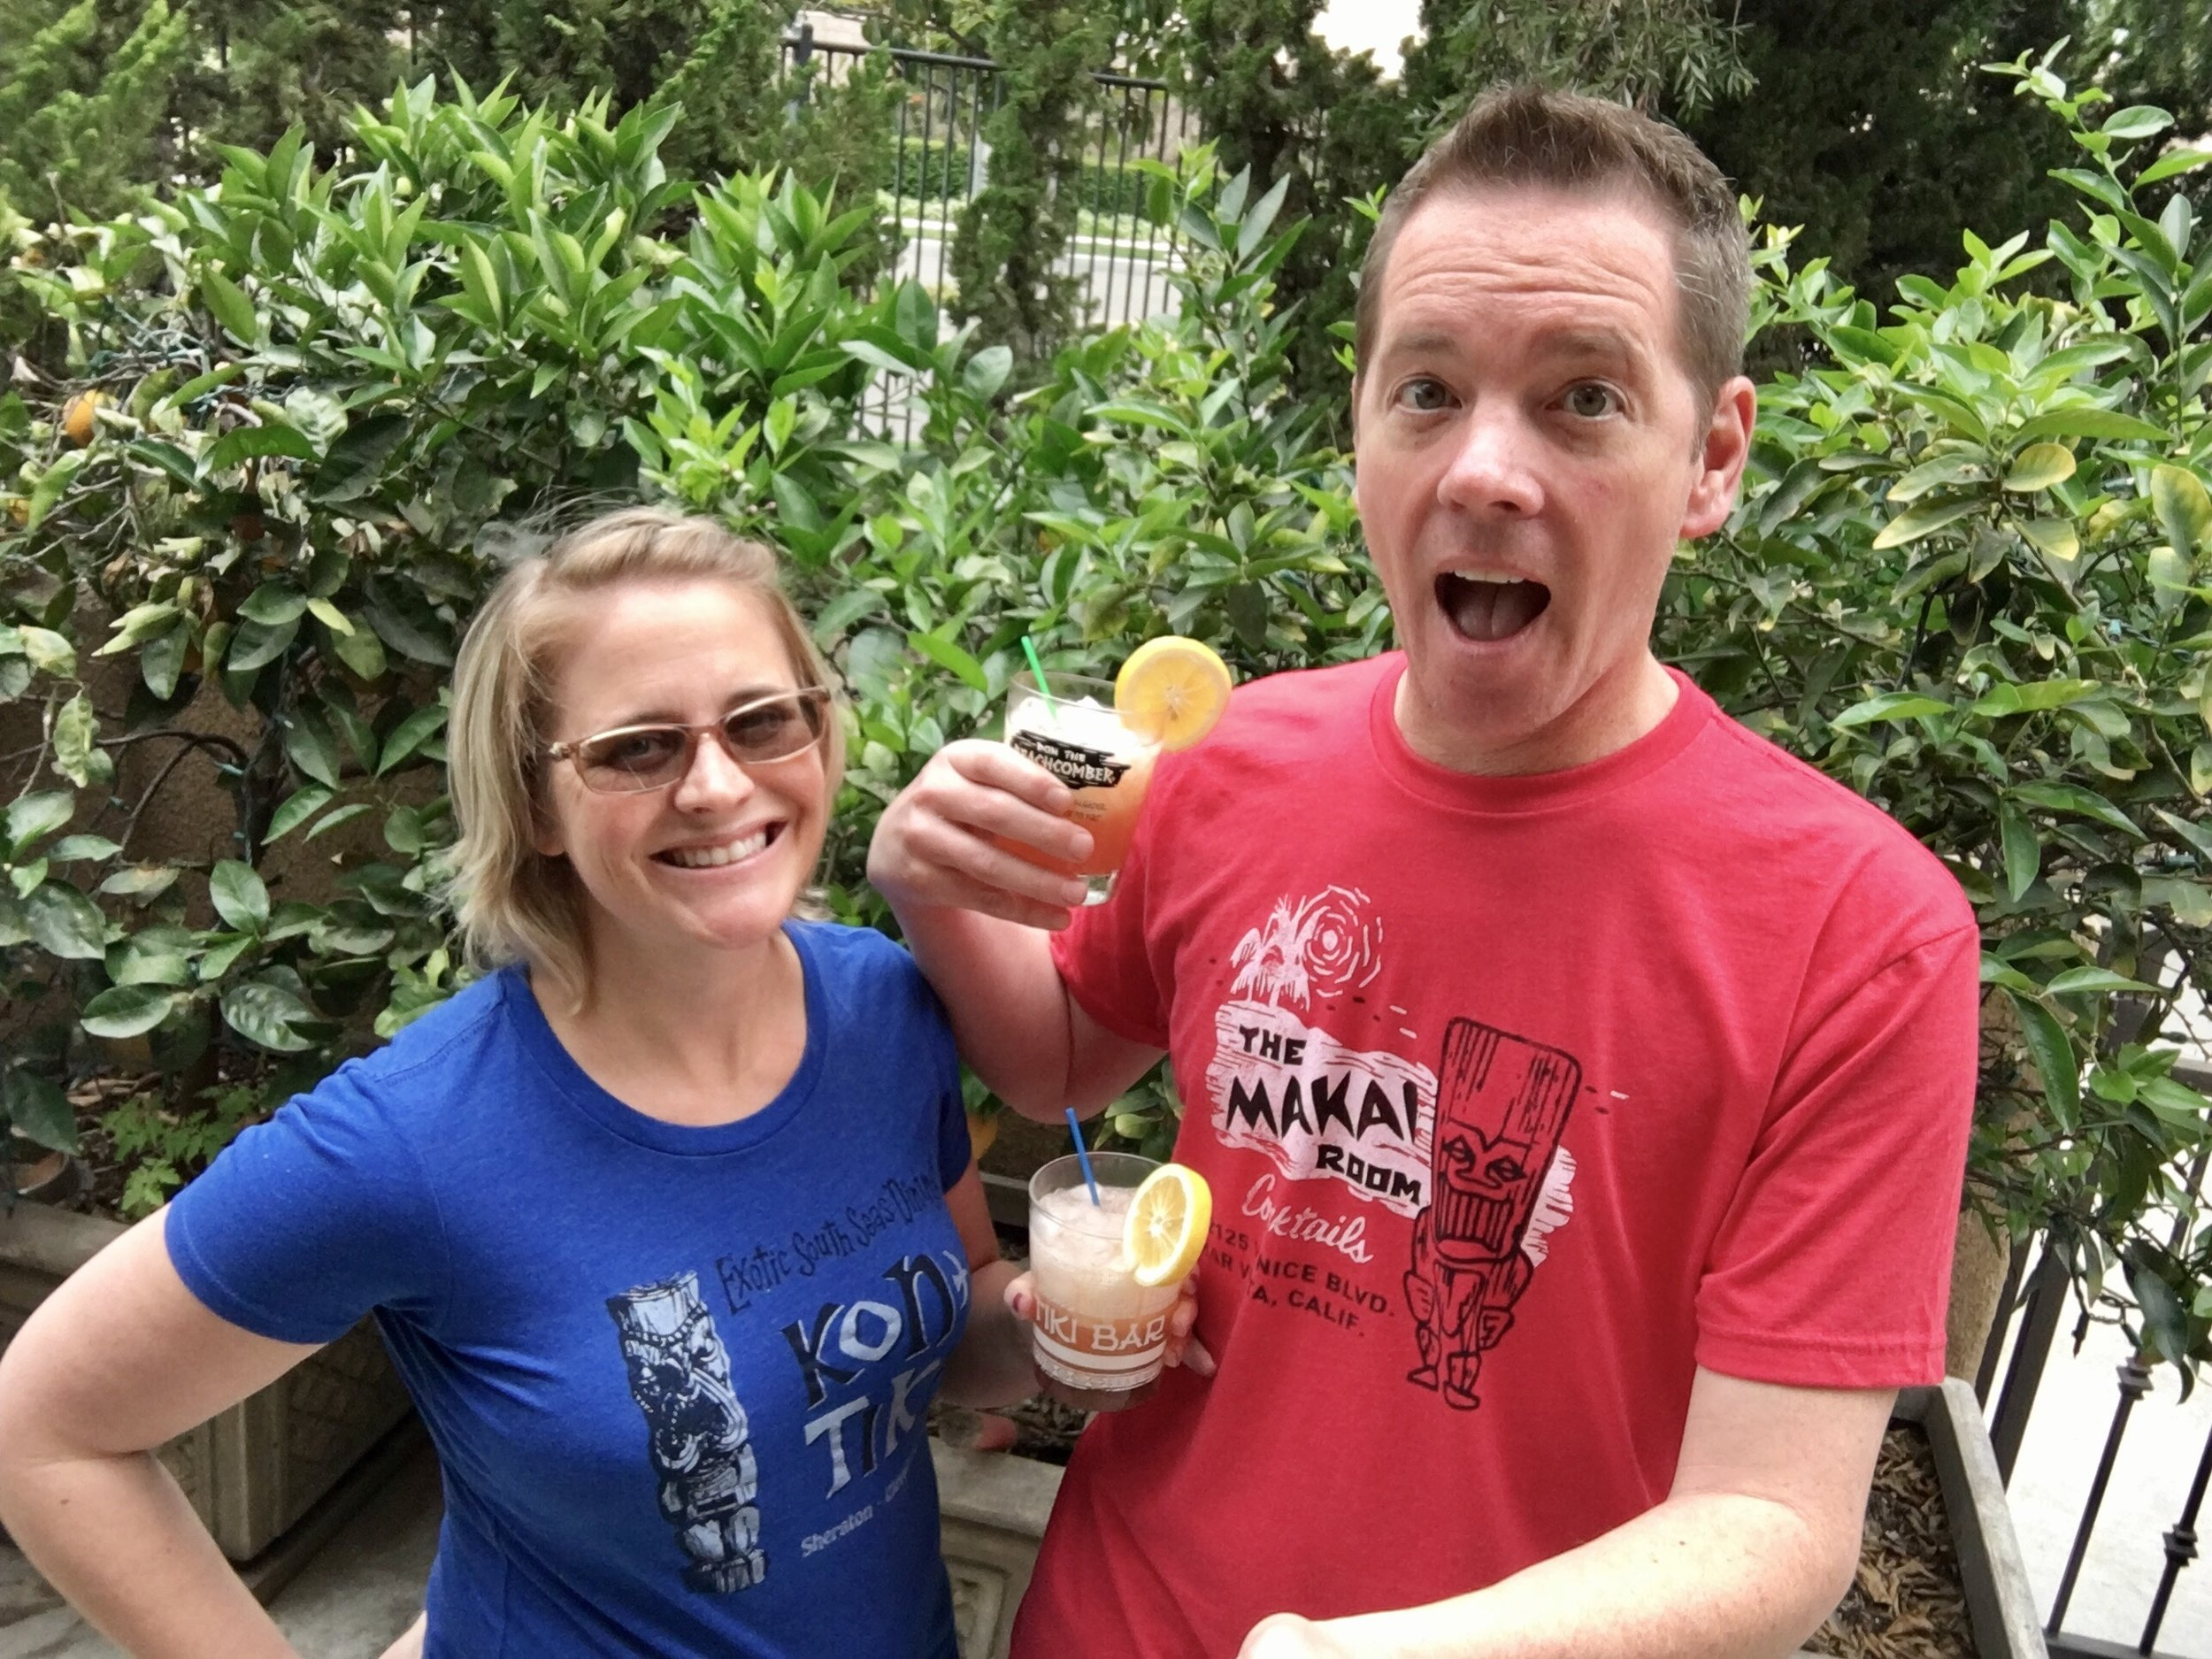 Starshine and Sunshine enjoy our latest cocktail while showing off their  Tiki Bar T-Shirt Club  shirts. Don't we look like a fun bunch?